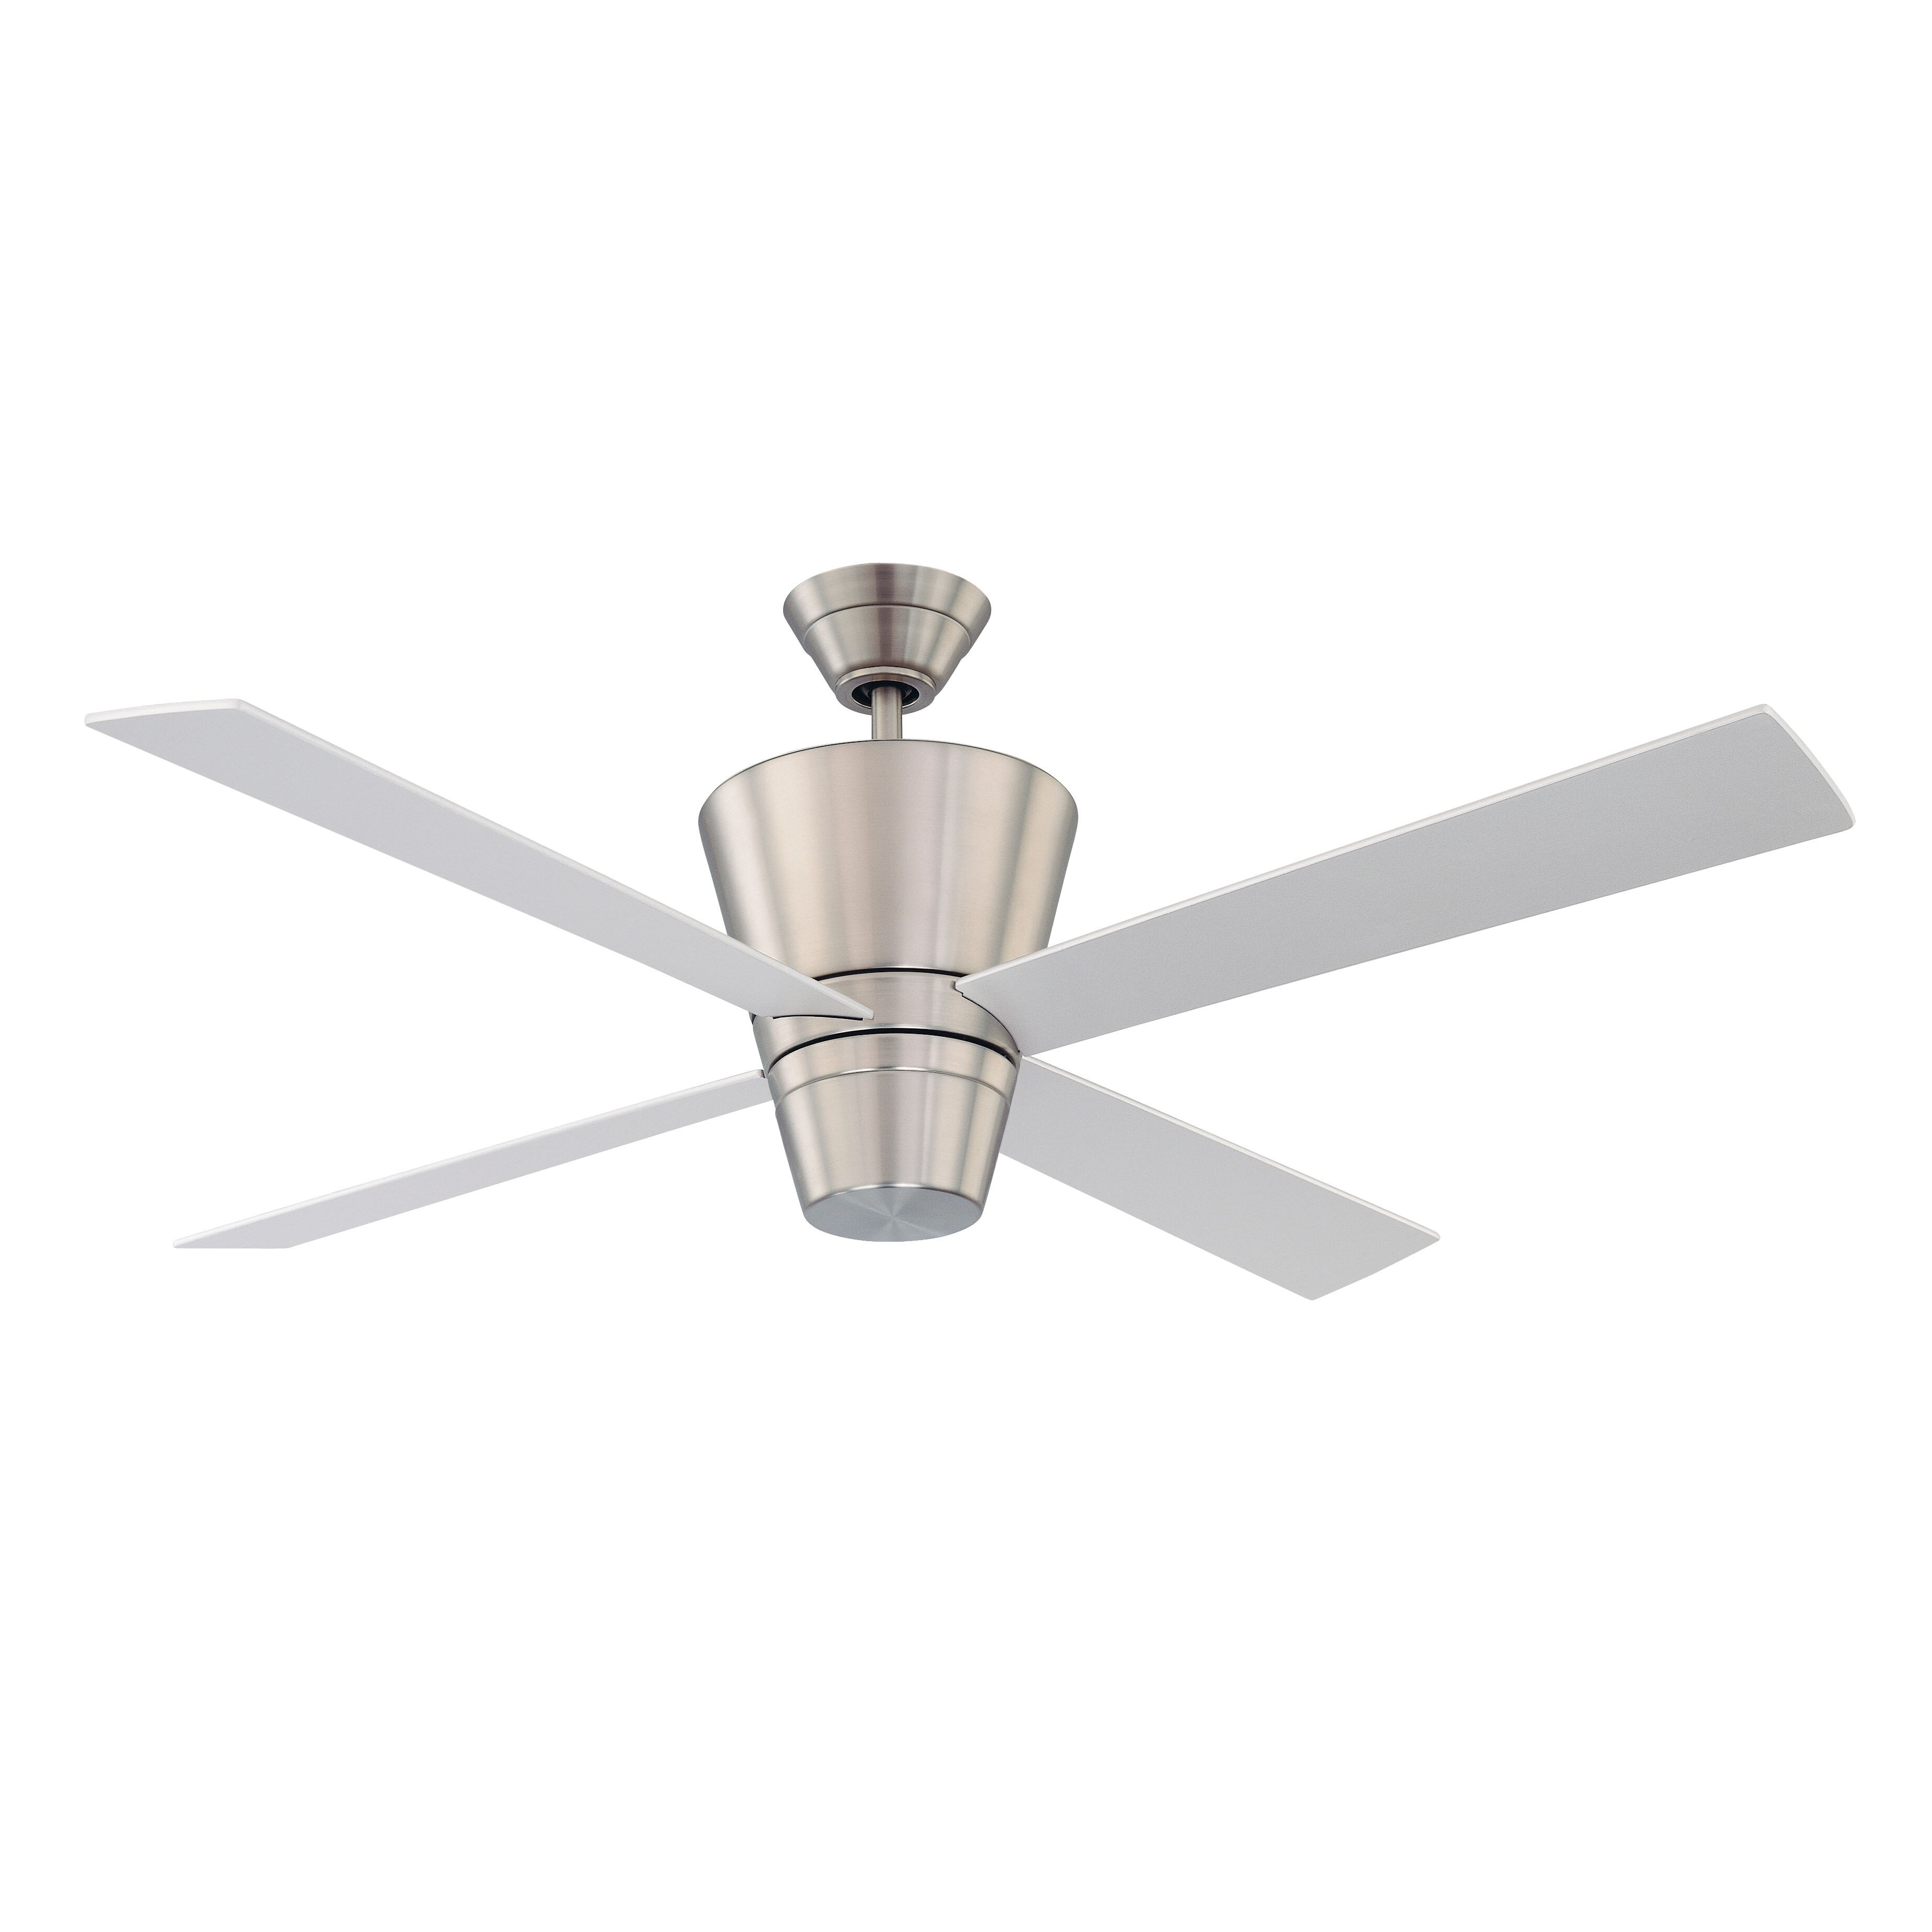 52 contour 4 blade ceiling fan with wall remote by kendal li